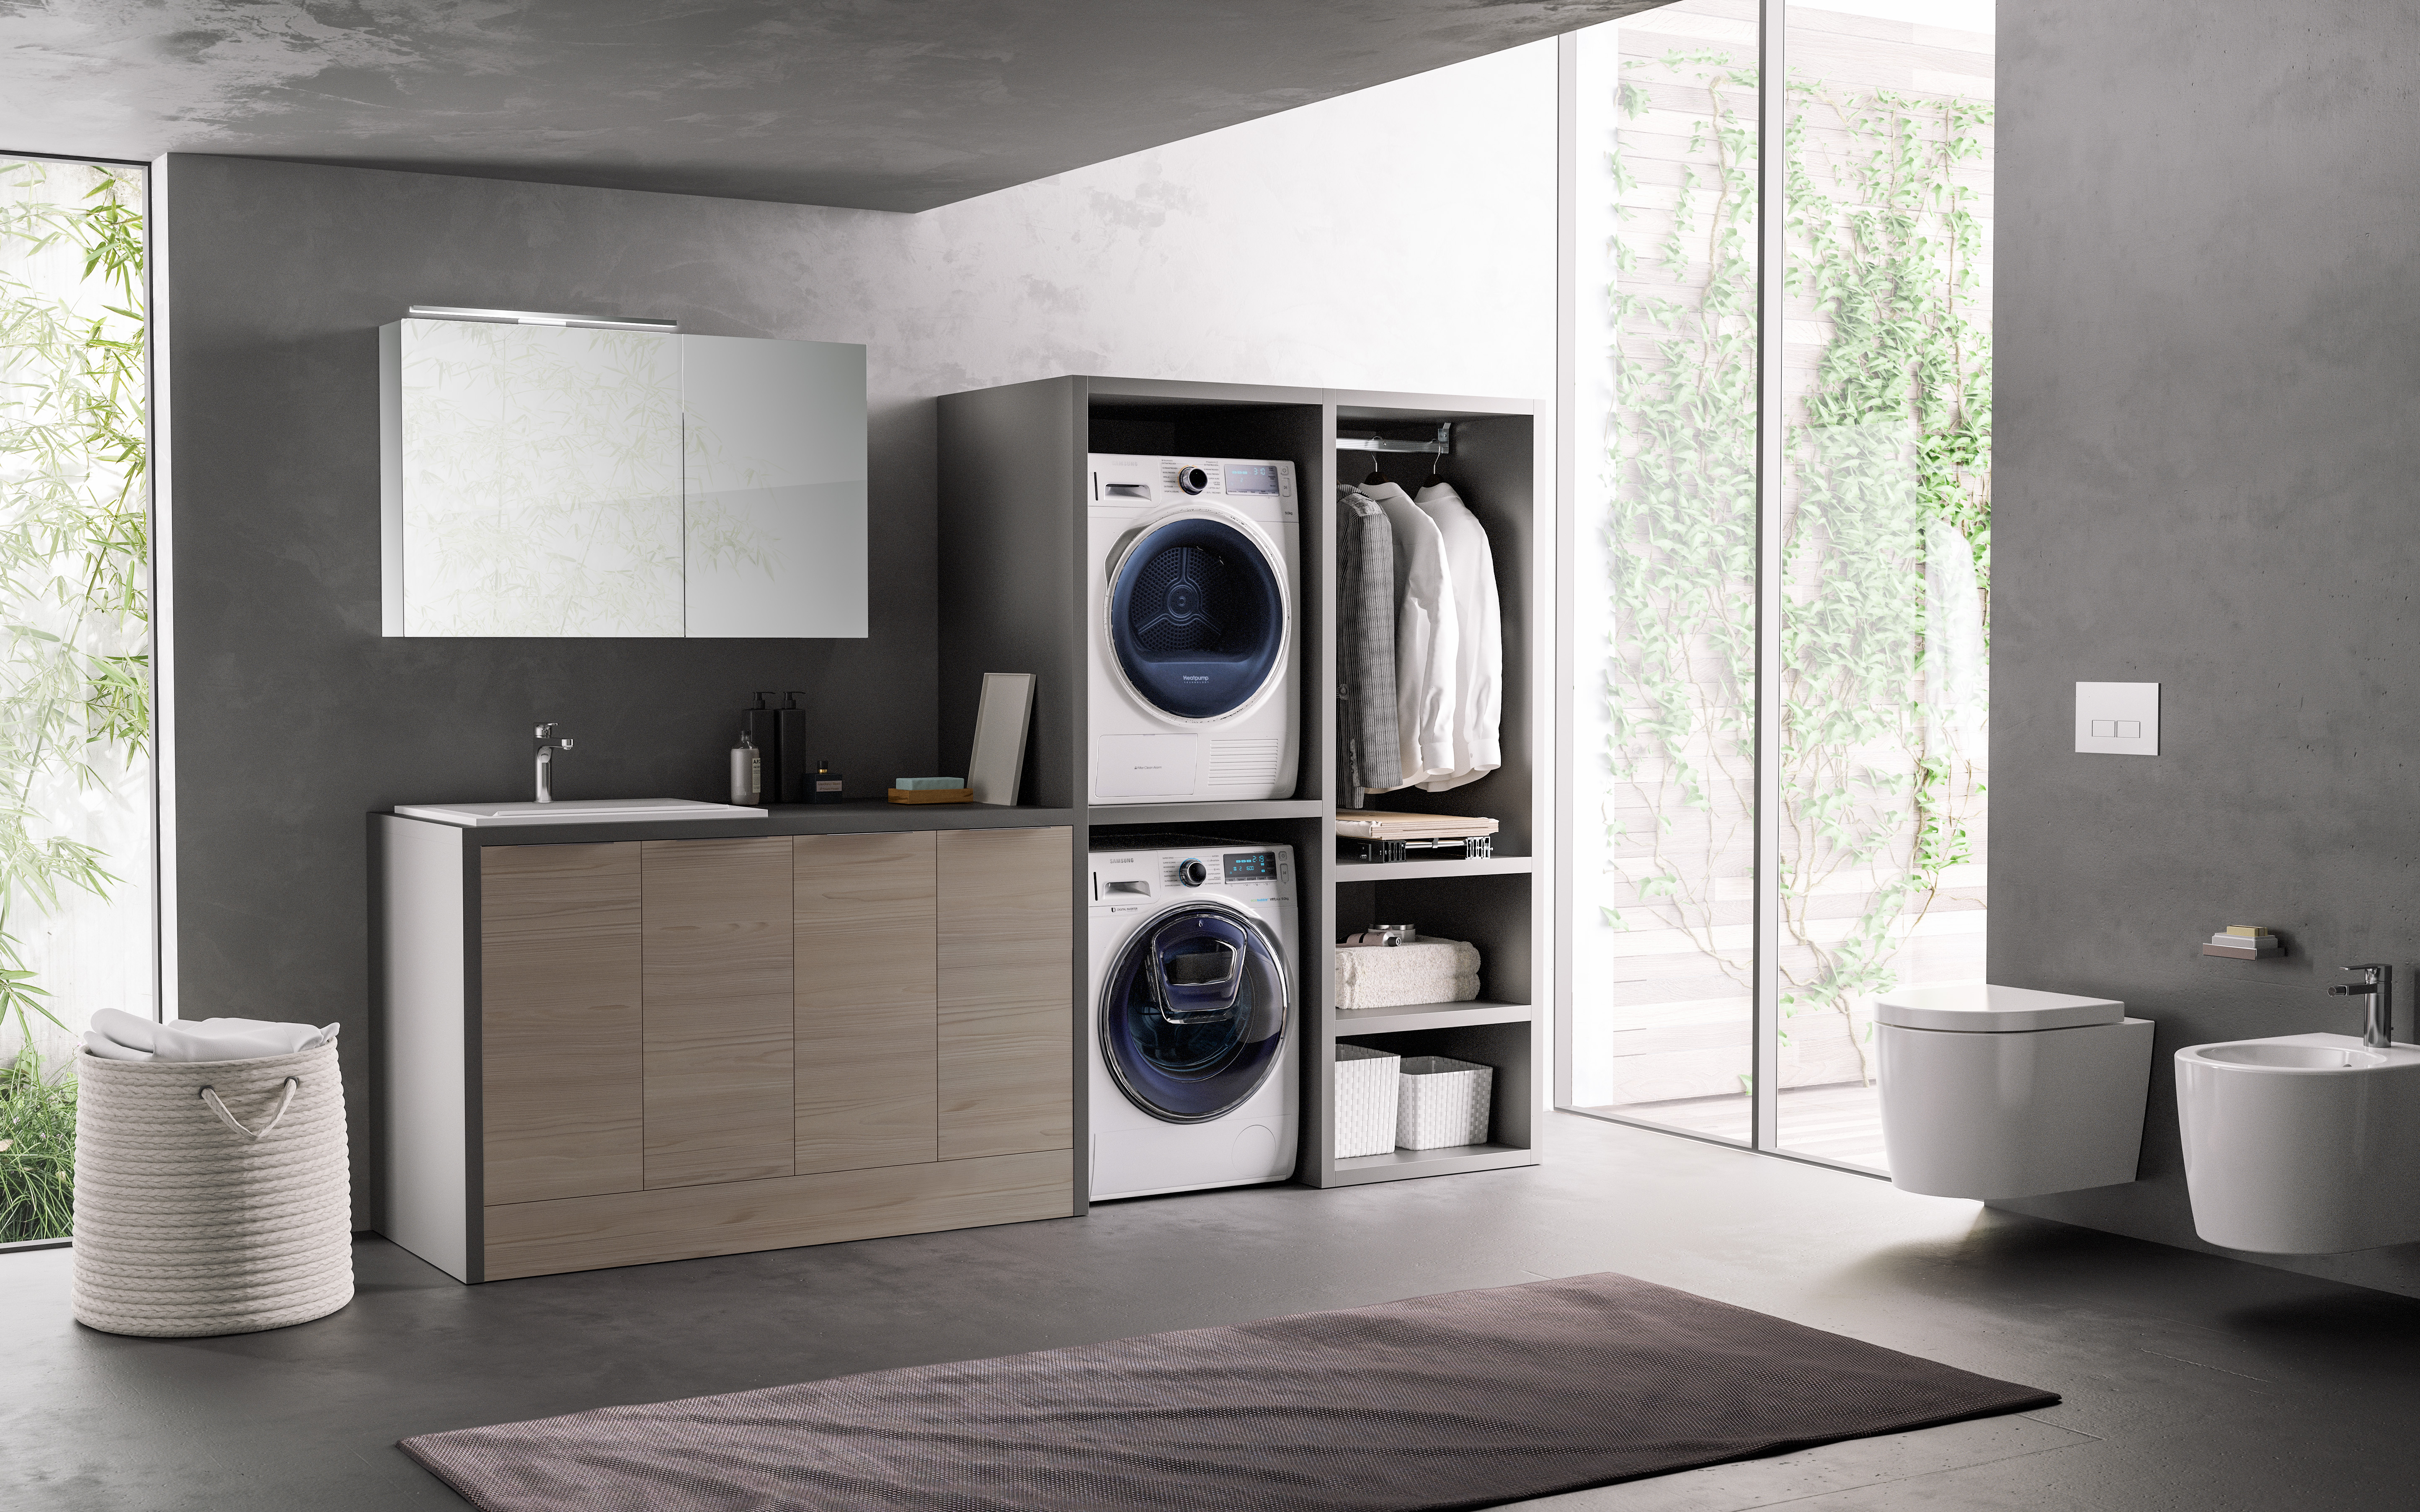 Hydro Collection: new compositions to organize the laundry space.